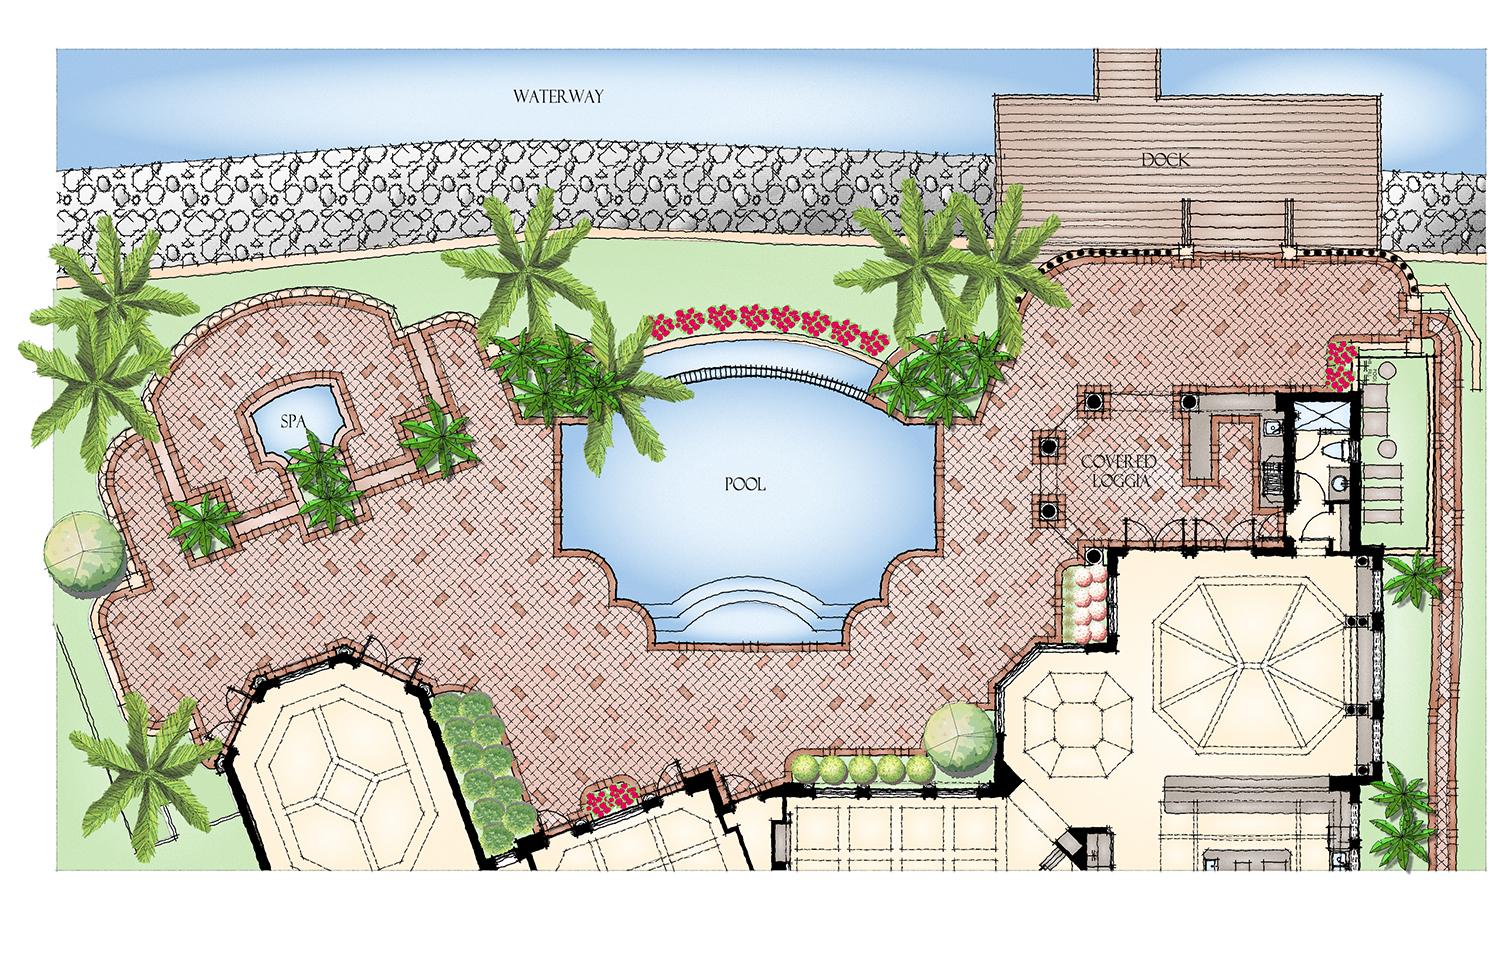 pool patio rendering.jpg